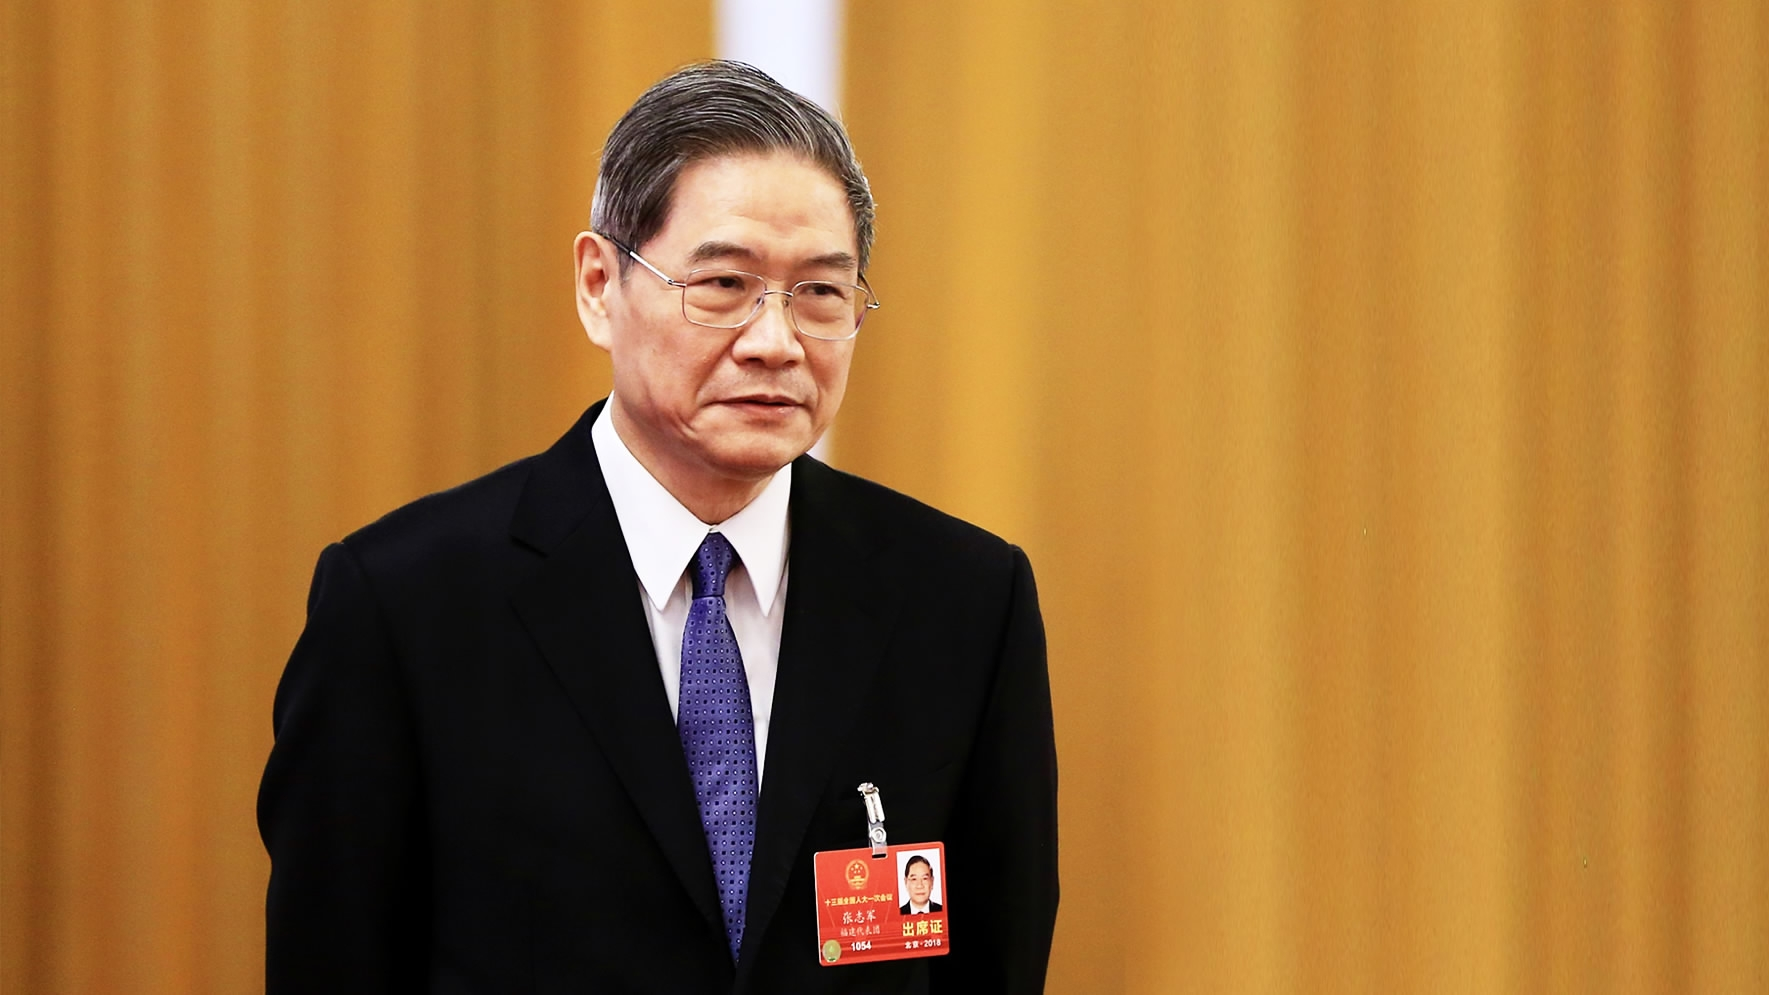 China has sufficient capacity to contain separatist attempt for 'Taiwan independence'